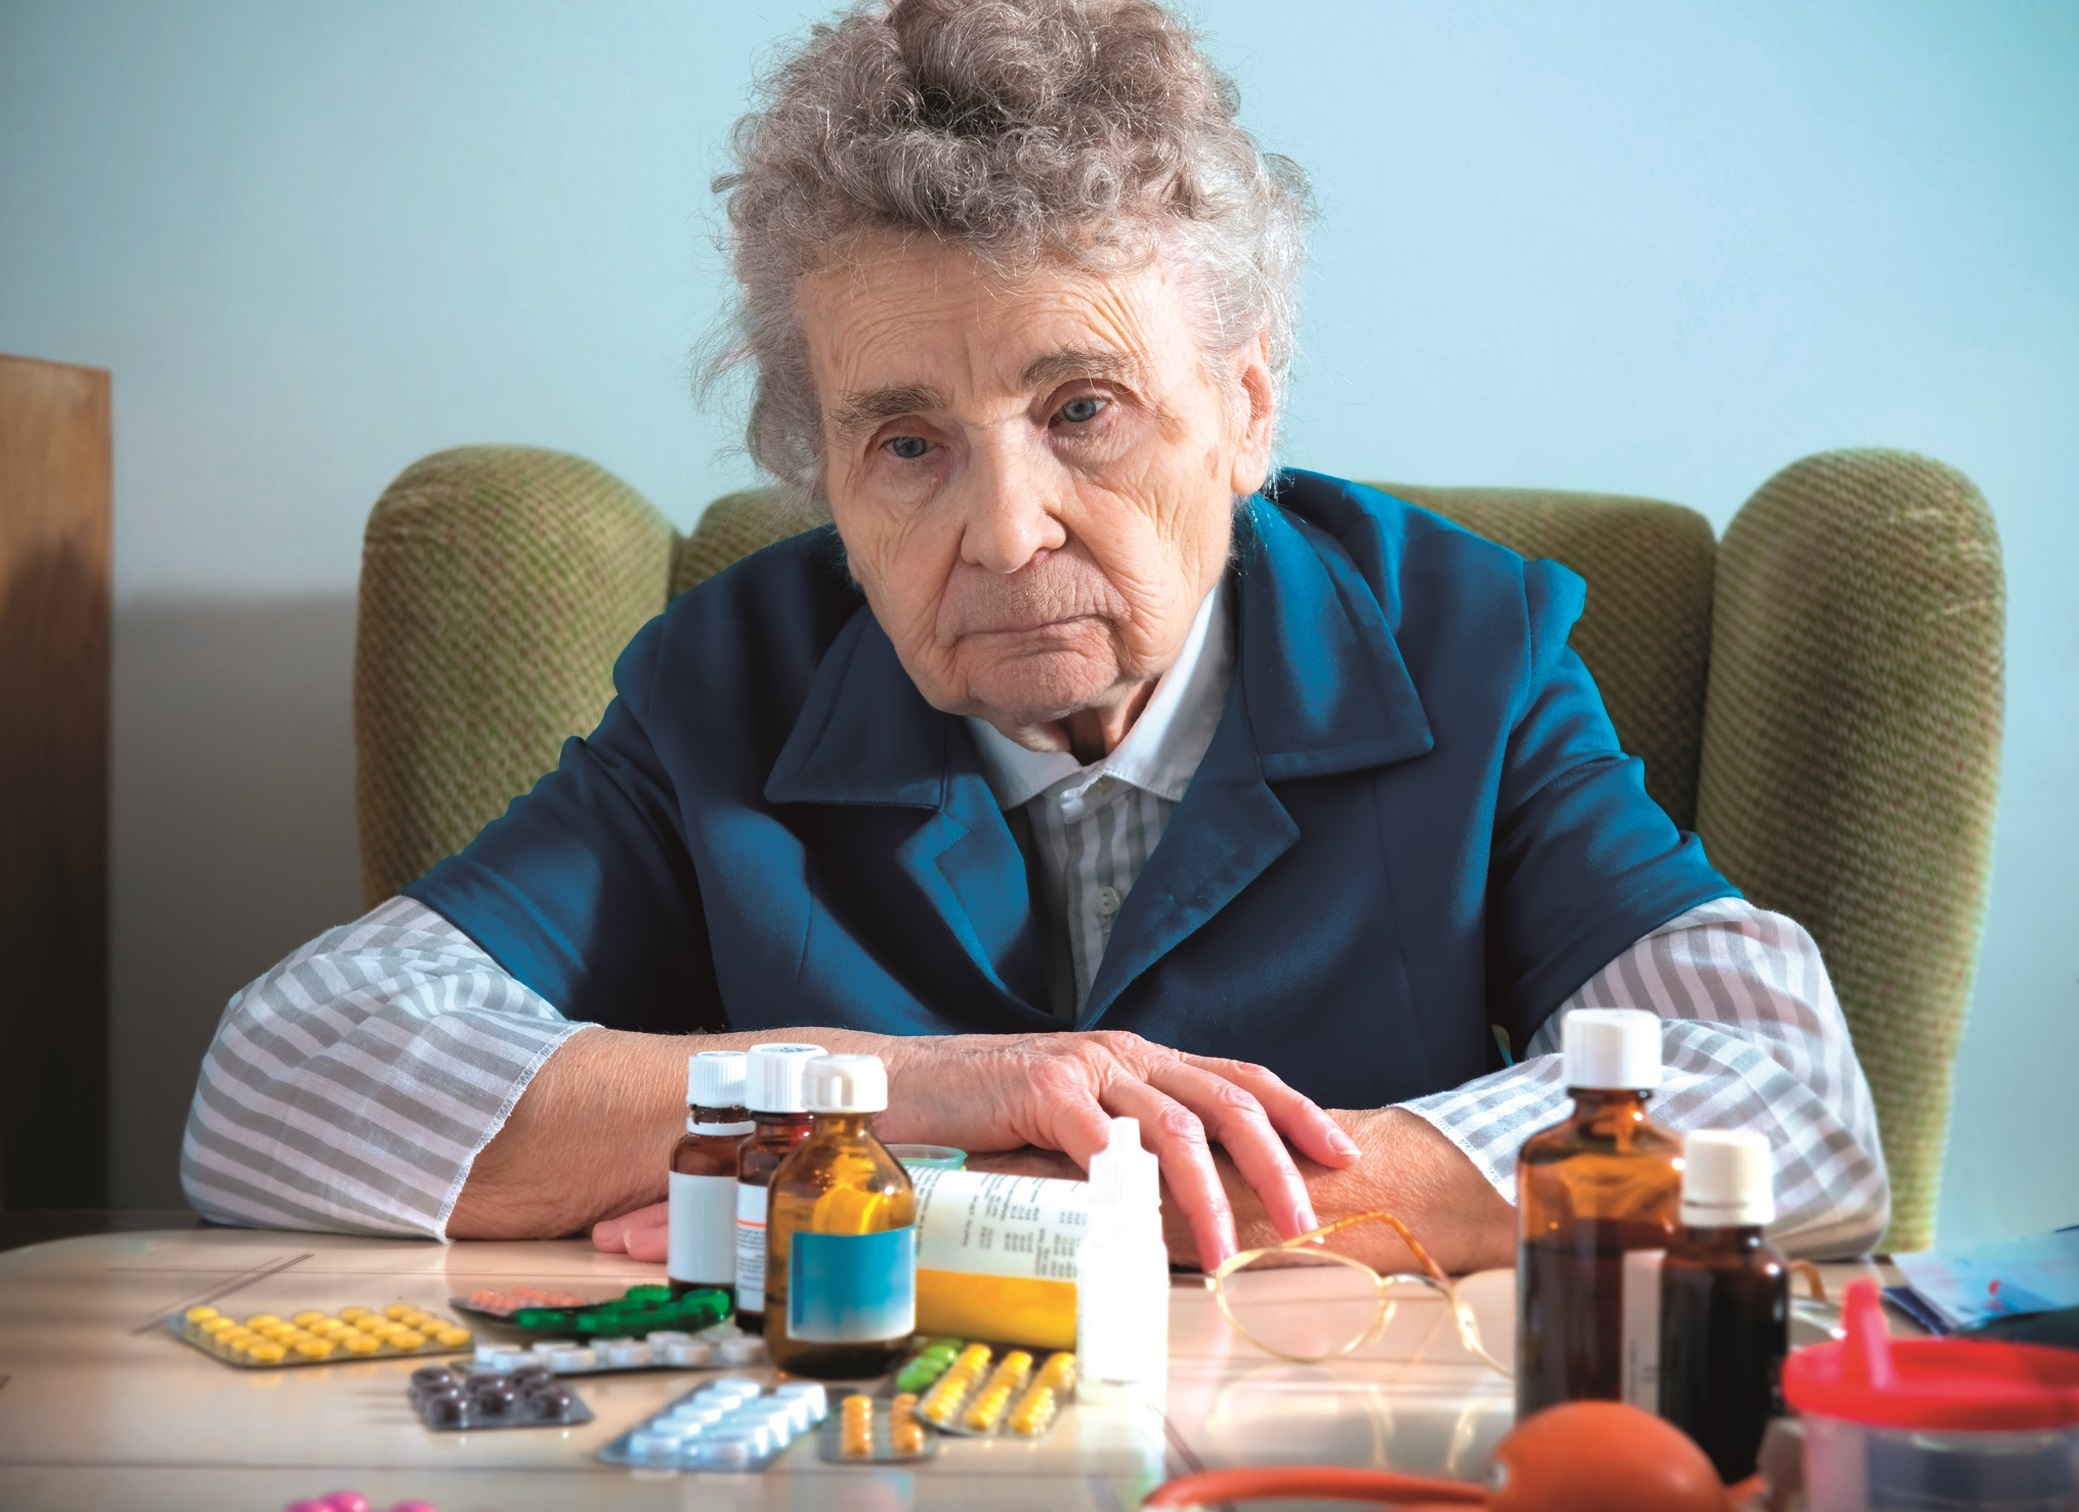 An elderly women trying to mange her many medications, by herself